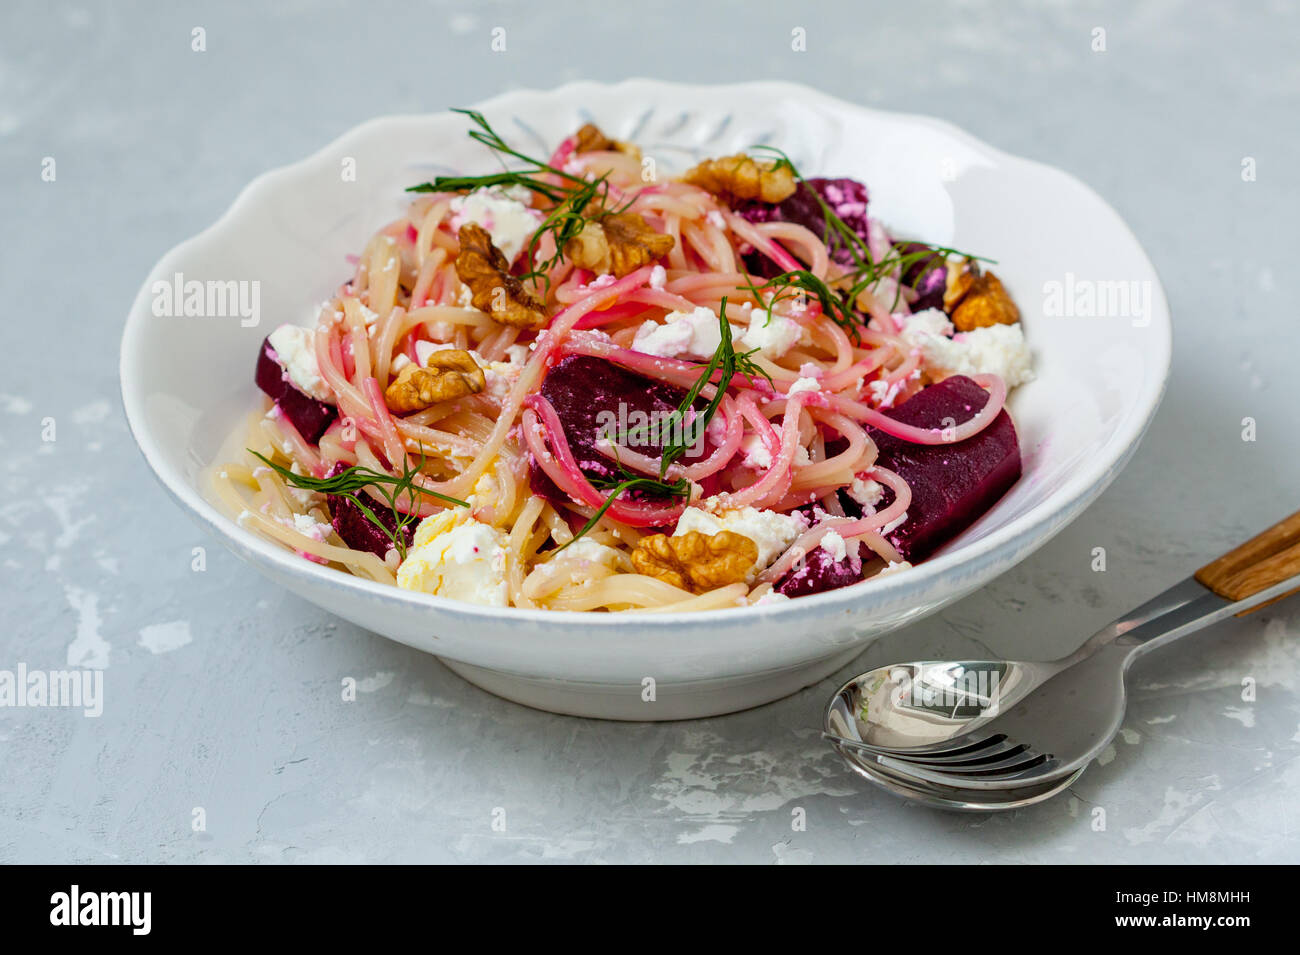 Spaghetti with feta, walnuts and beetroot. Love for a healthy food concept - Stock Image